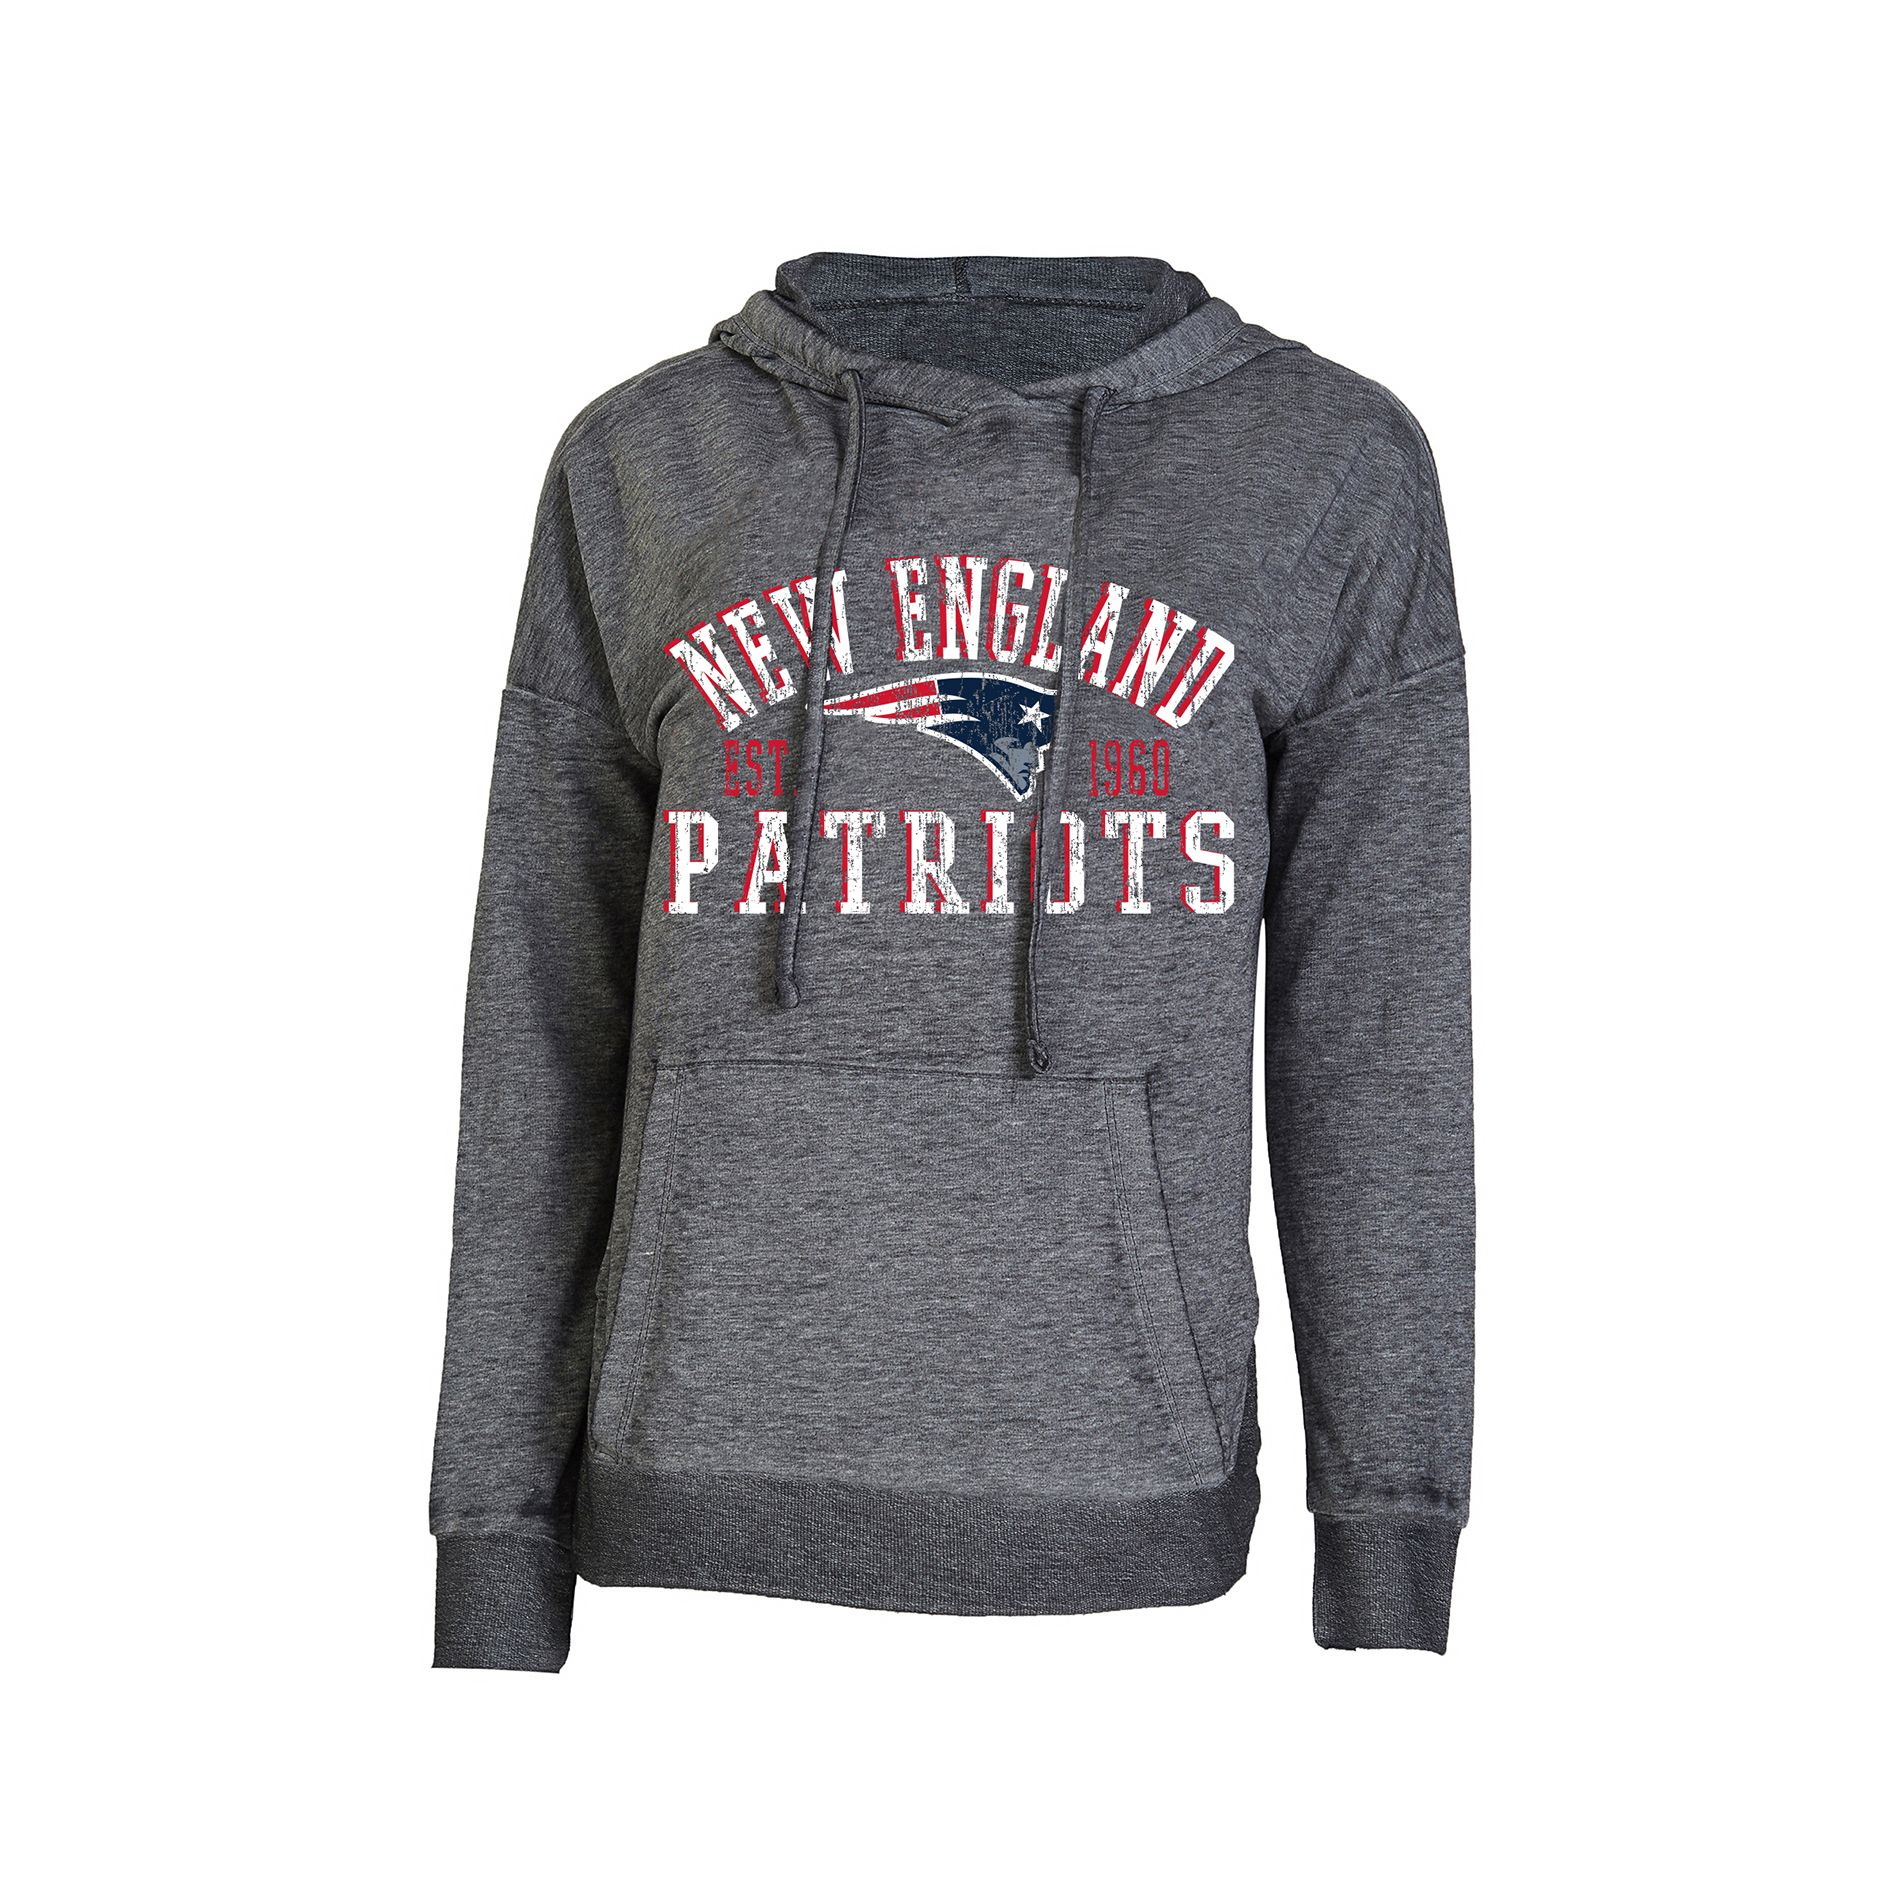 best service a5779 05a57 This women's NFL New England Patriots hoodie works equally ...